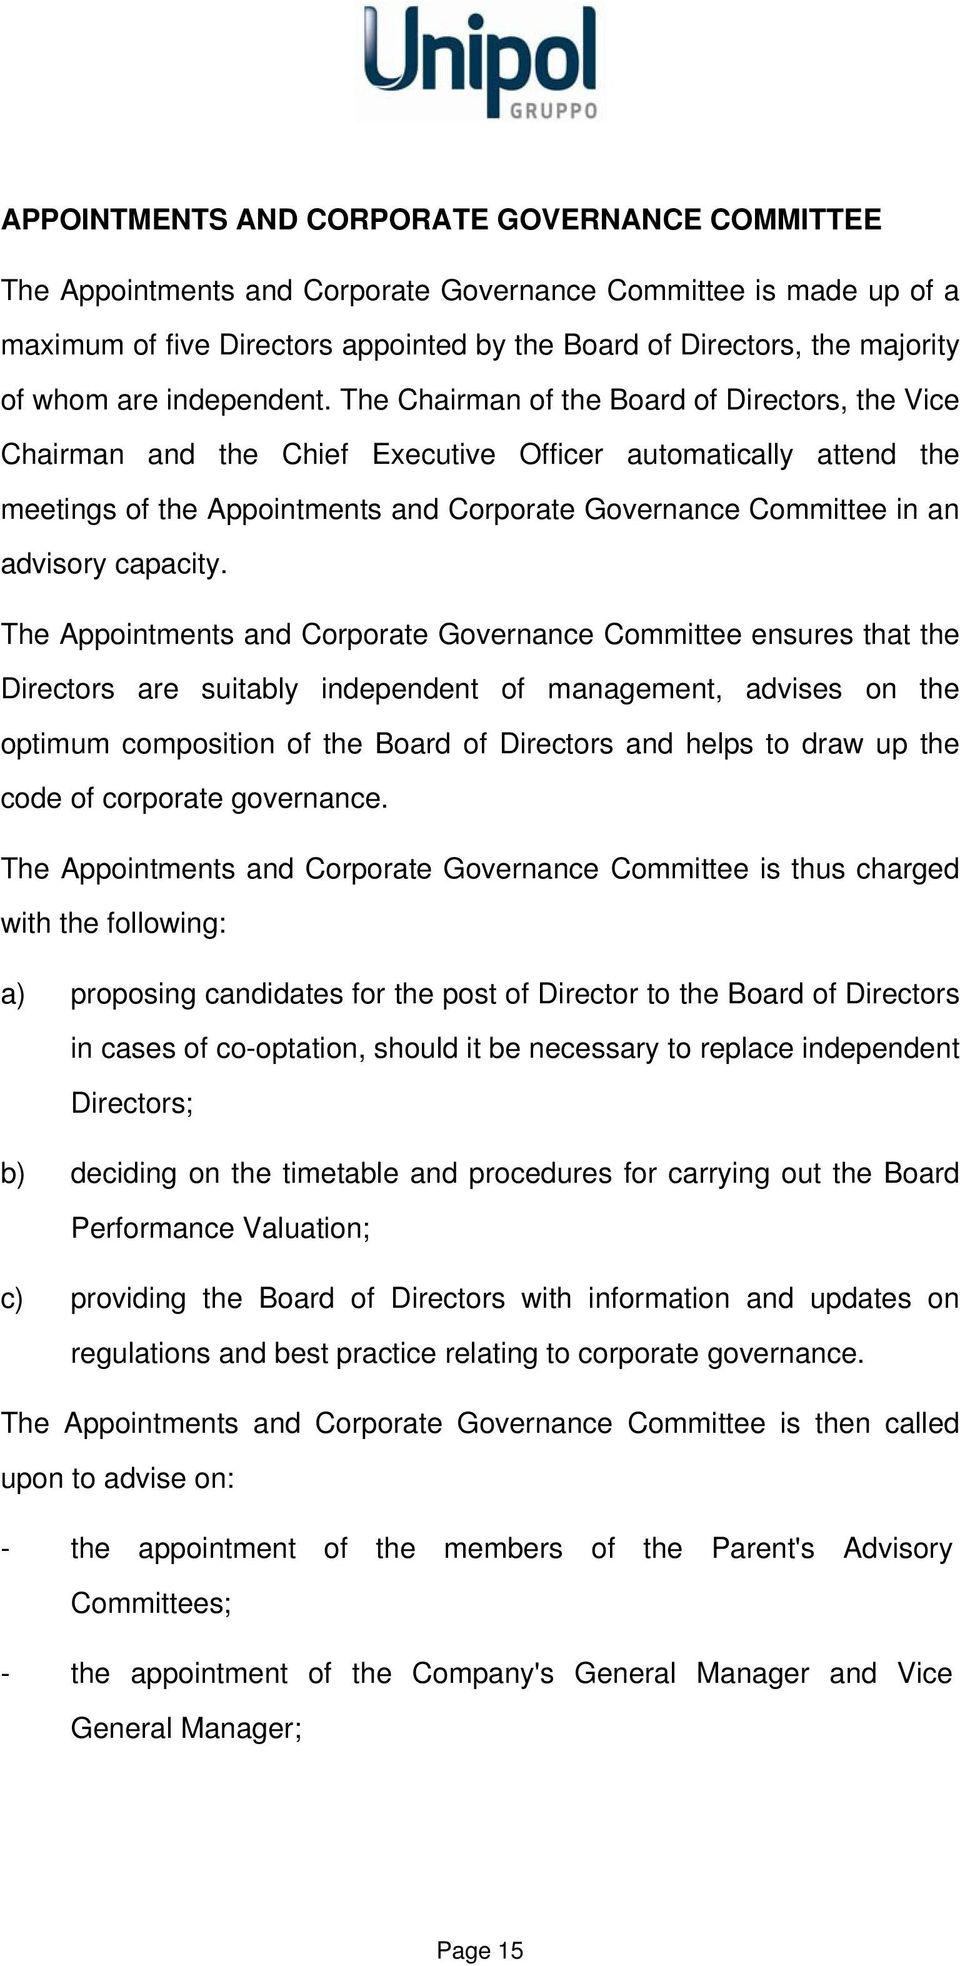 The Chairman of the Board of Directors, the Vice Chairman and the Chief Executive Officer automatically attend the meetings of the Appointments and Corporate Governance Committee in an advisory